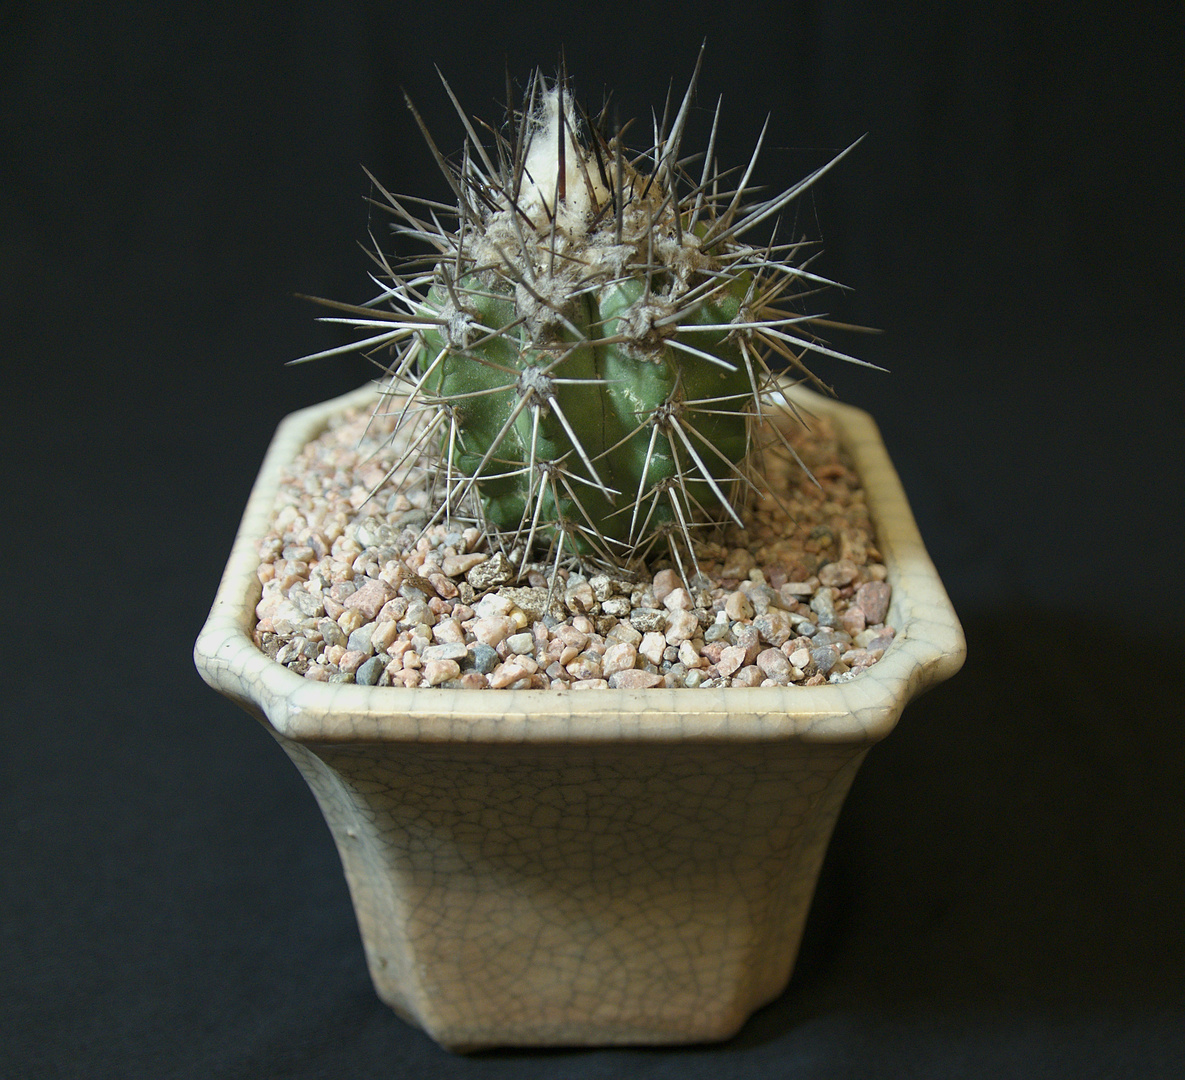 SCCSS 2017 October - Winner Novice Cactus - Bernard Johnson - Copiapoa marginata